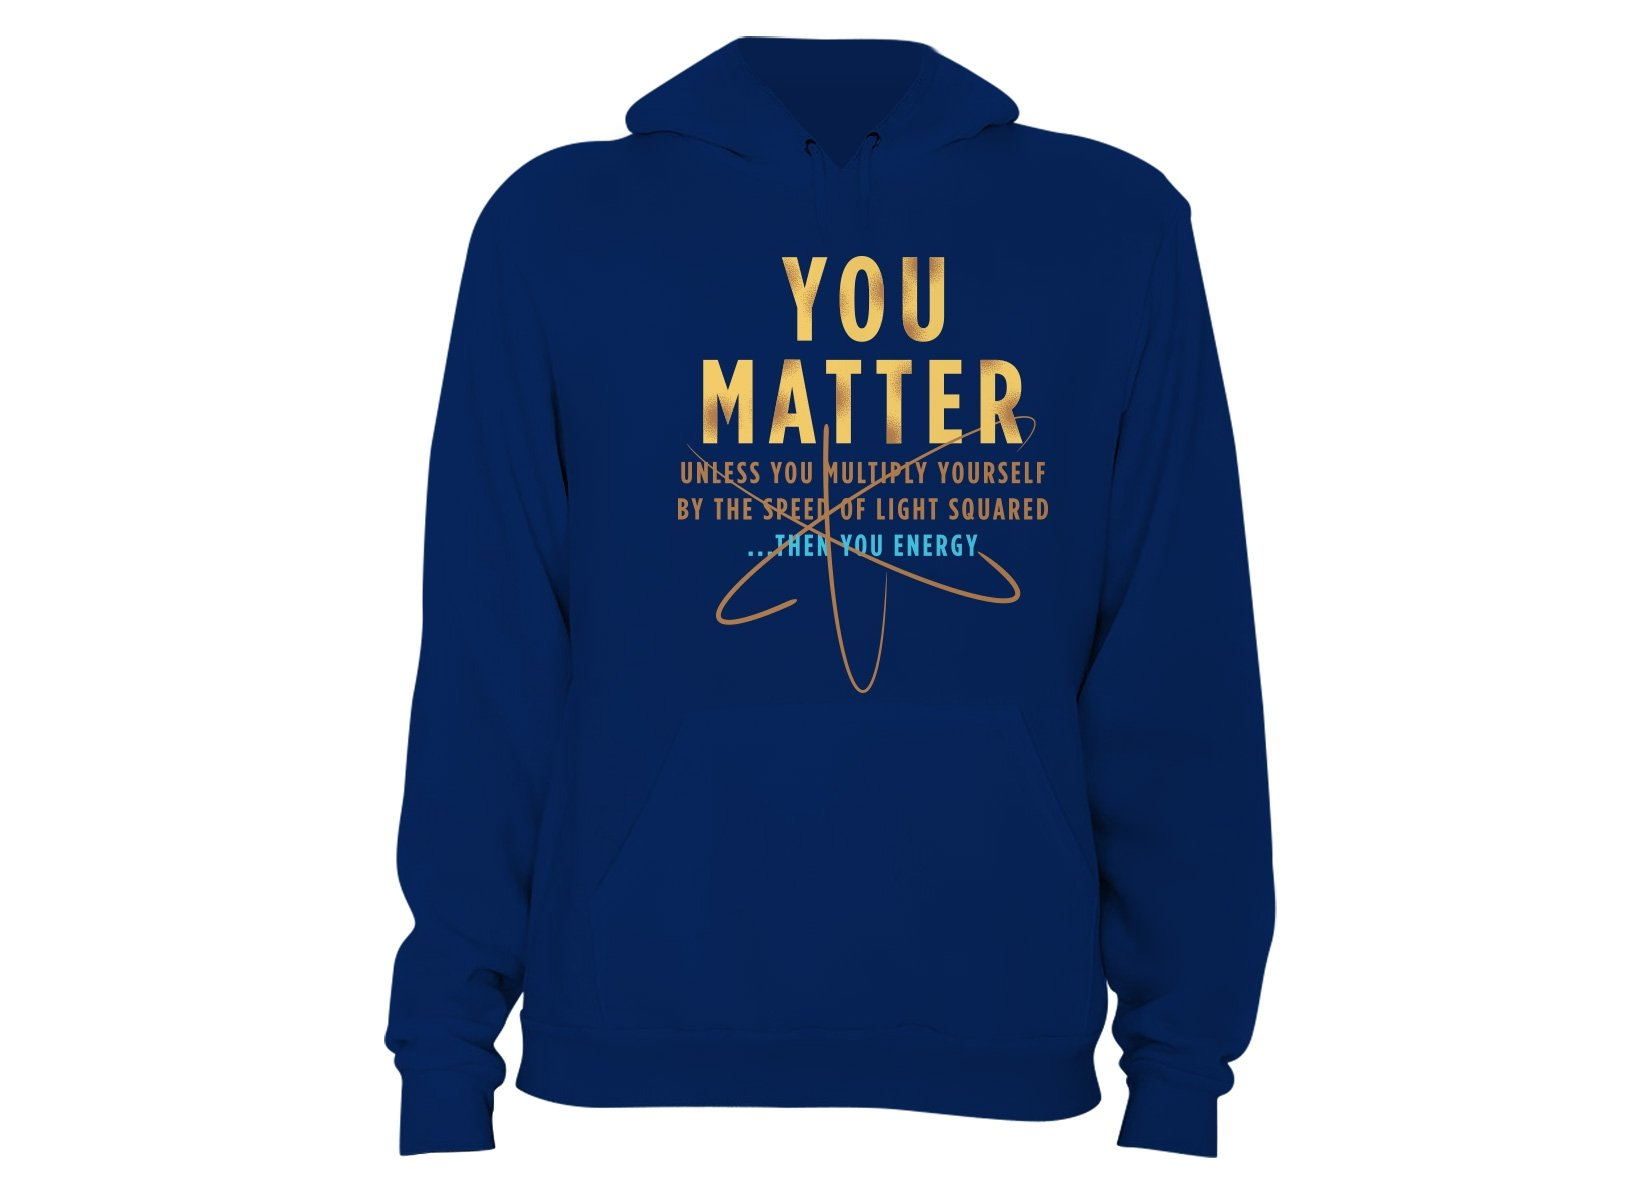 You Matter on Hoodie